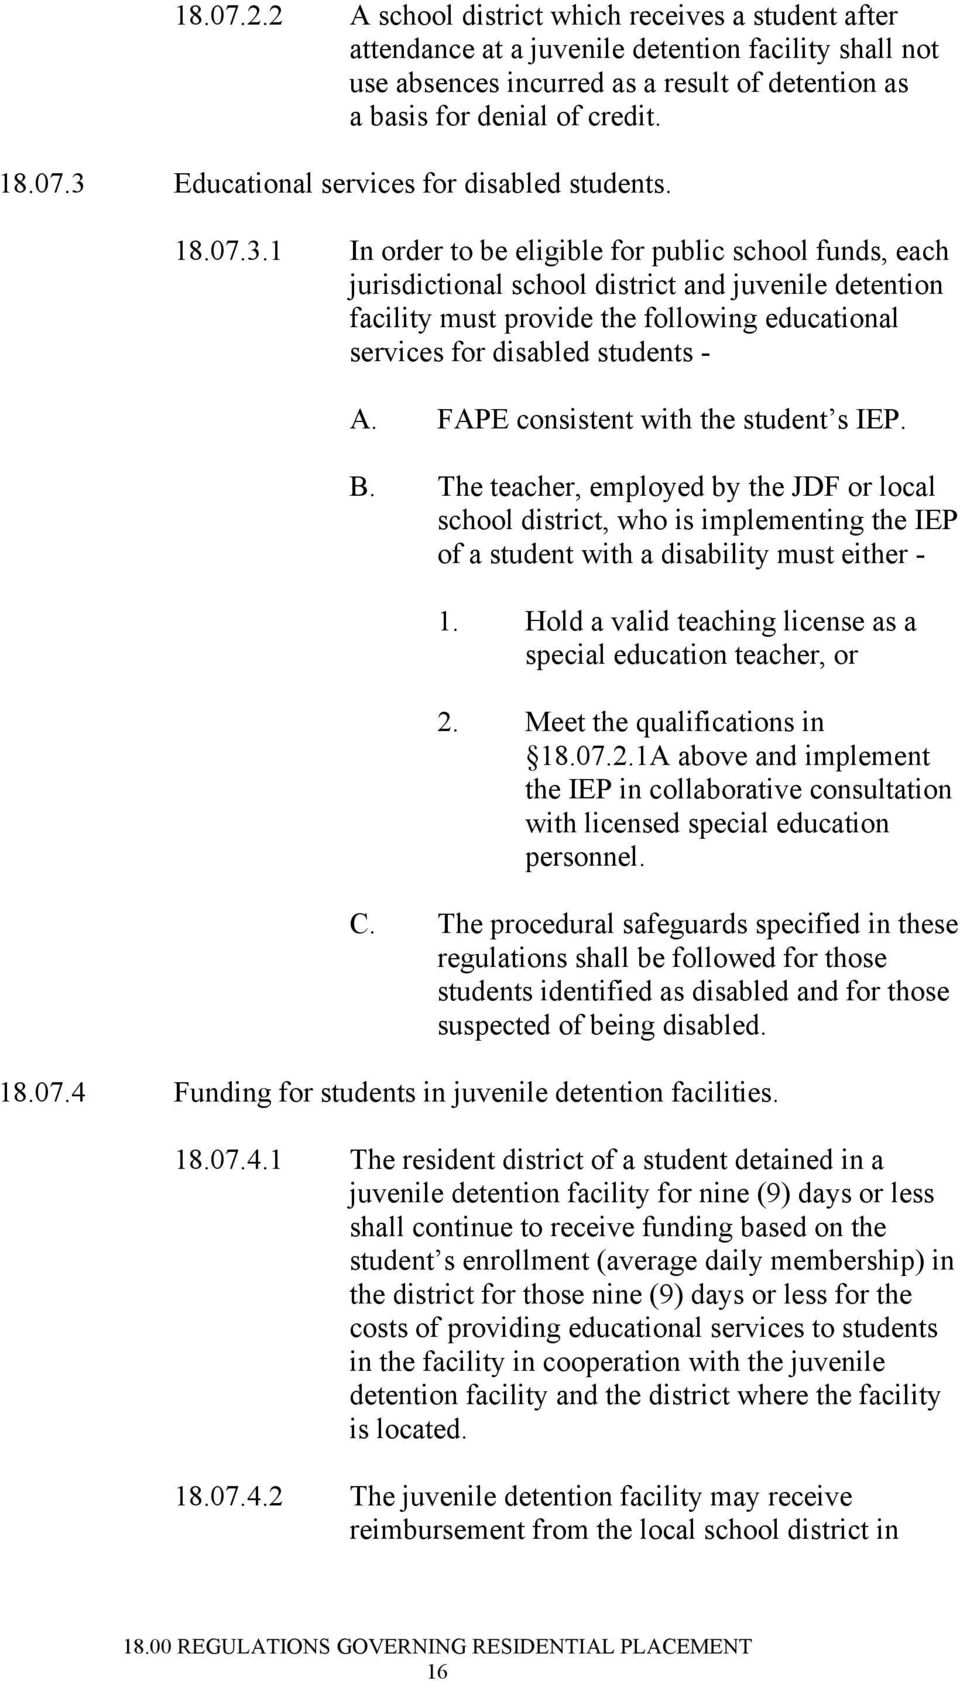 1 In order to be eligible for public school funds, each jurisdictional school district and juvenile detention facility must provide the following educational services for disabled students - A.